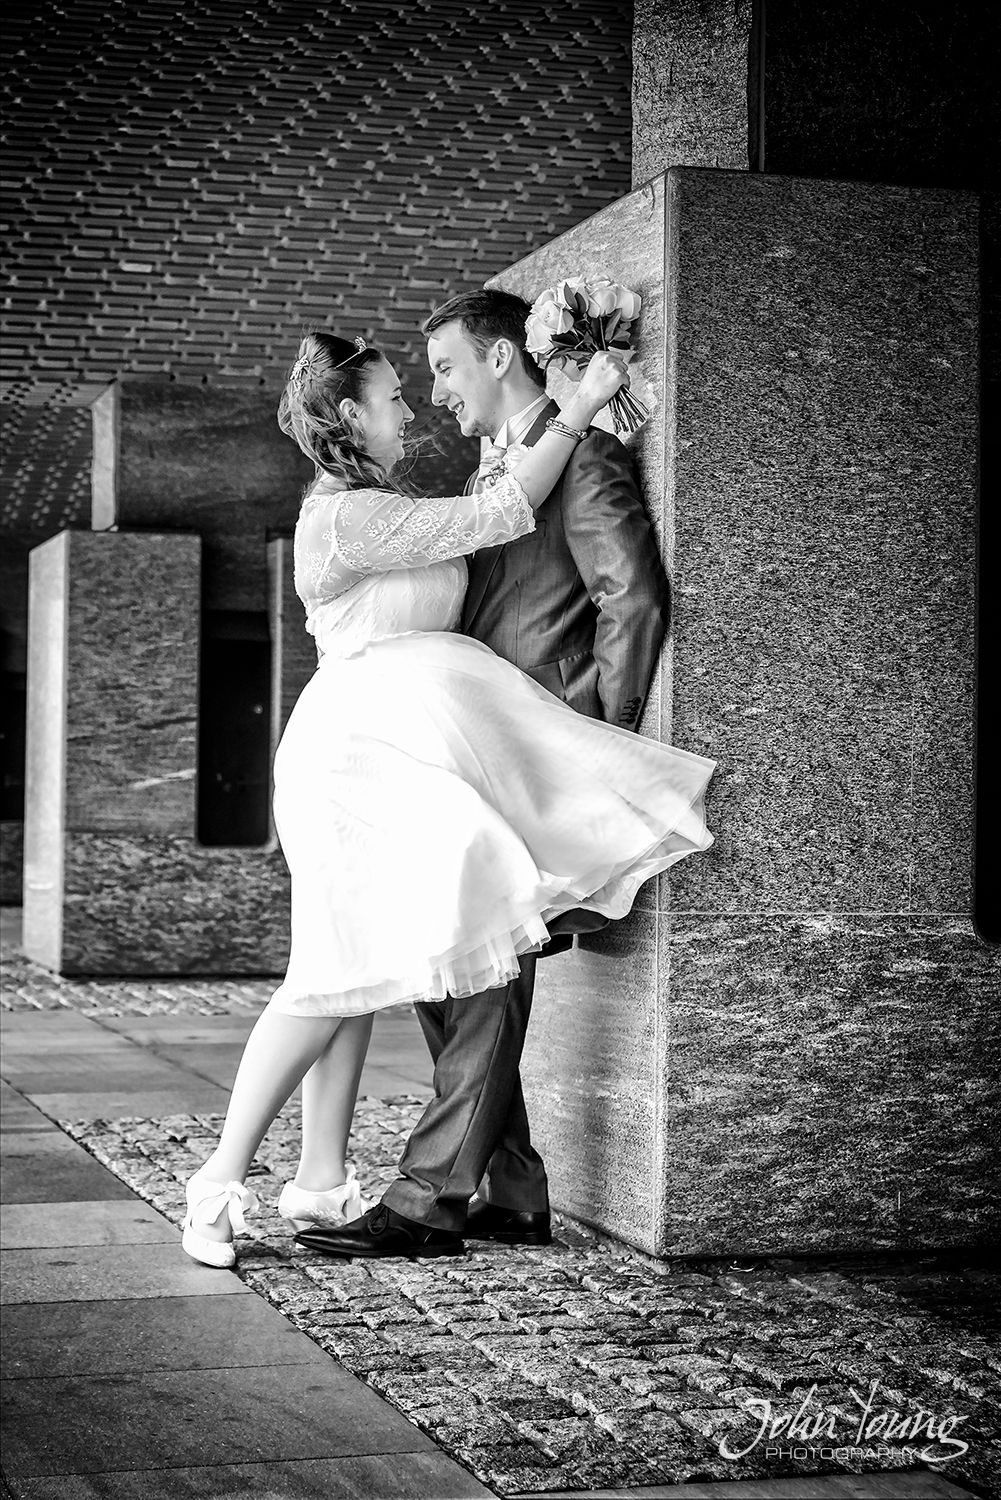 The wedding of kathryn u rob at newcastle registry office wedding